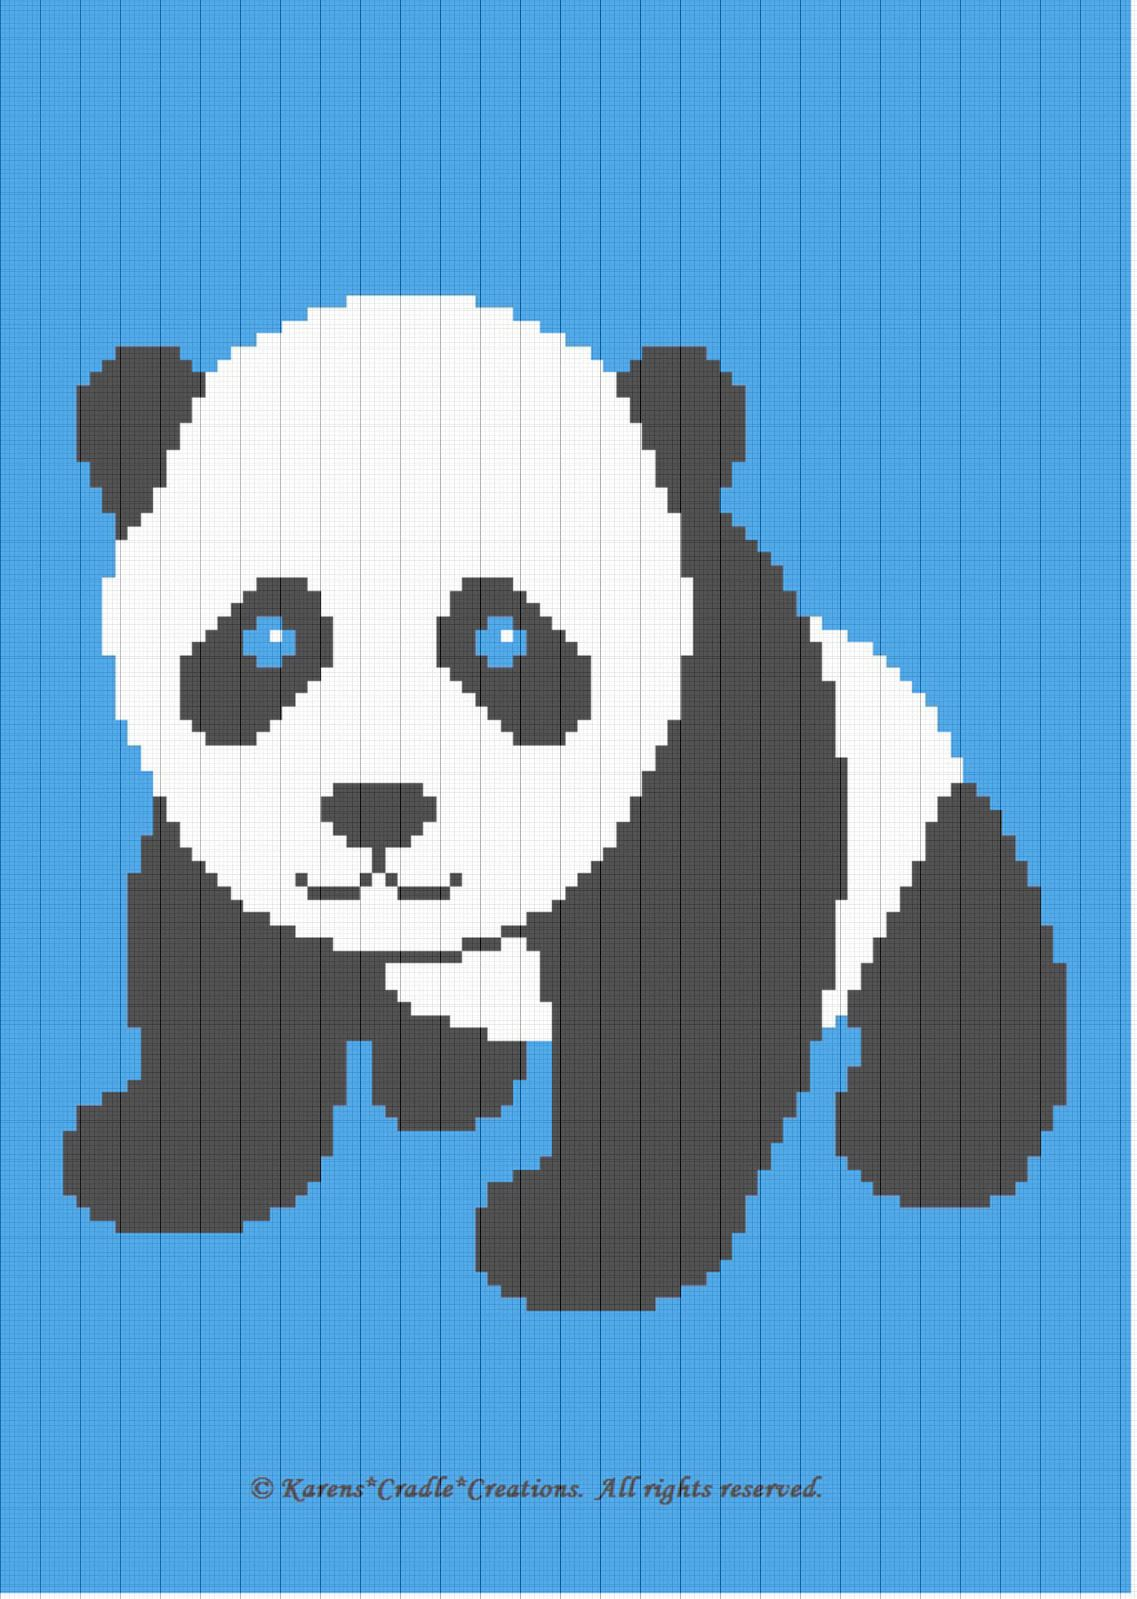 small resolution of baby panda bear afghan pattern original graph pattern artwork karens cradle creations all rights reserved up for auction is a graph pattern that